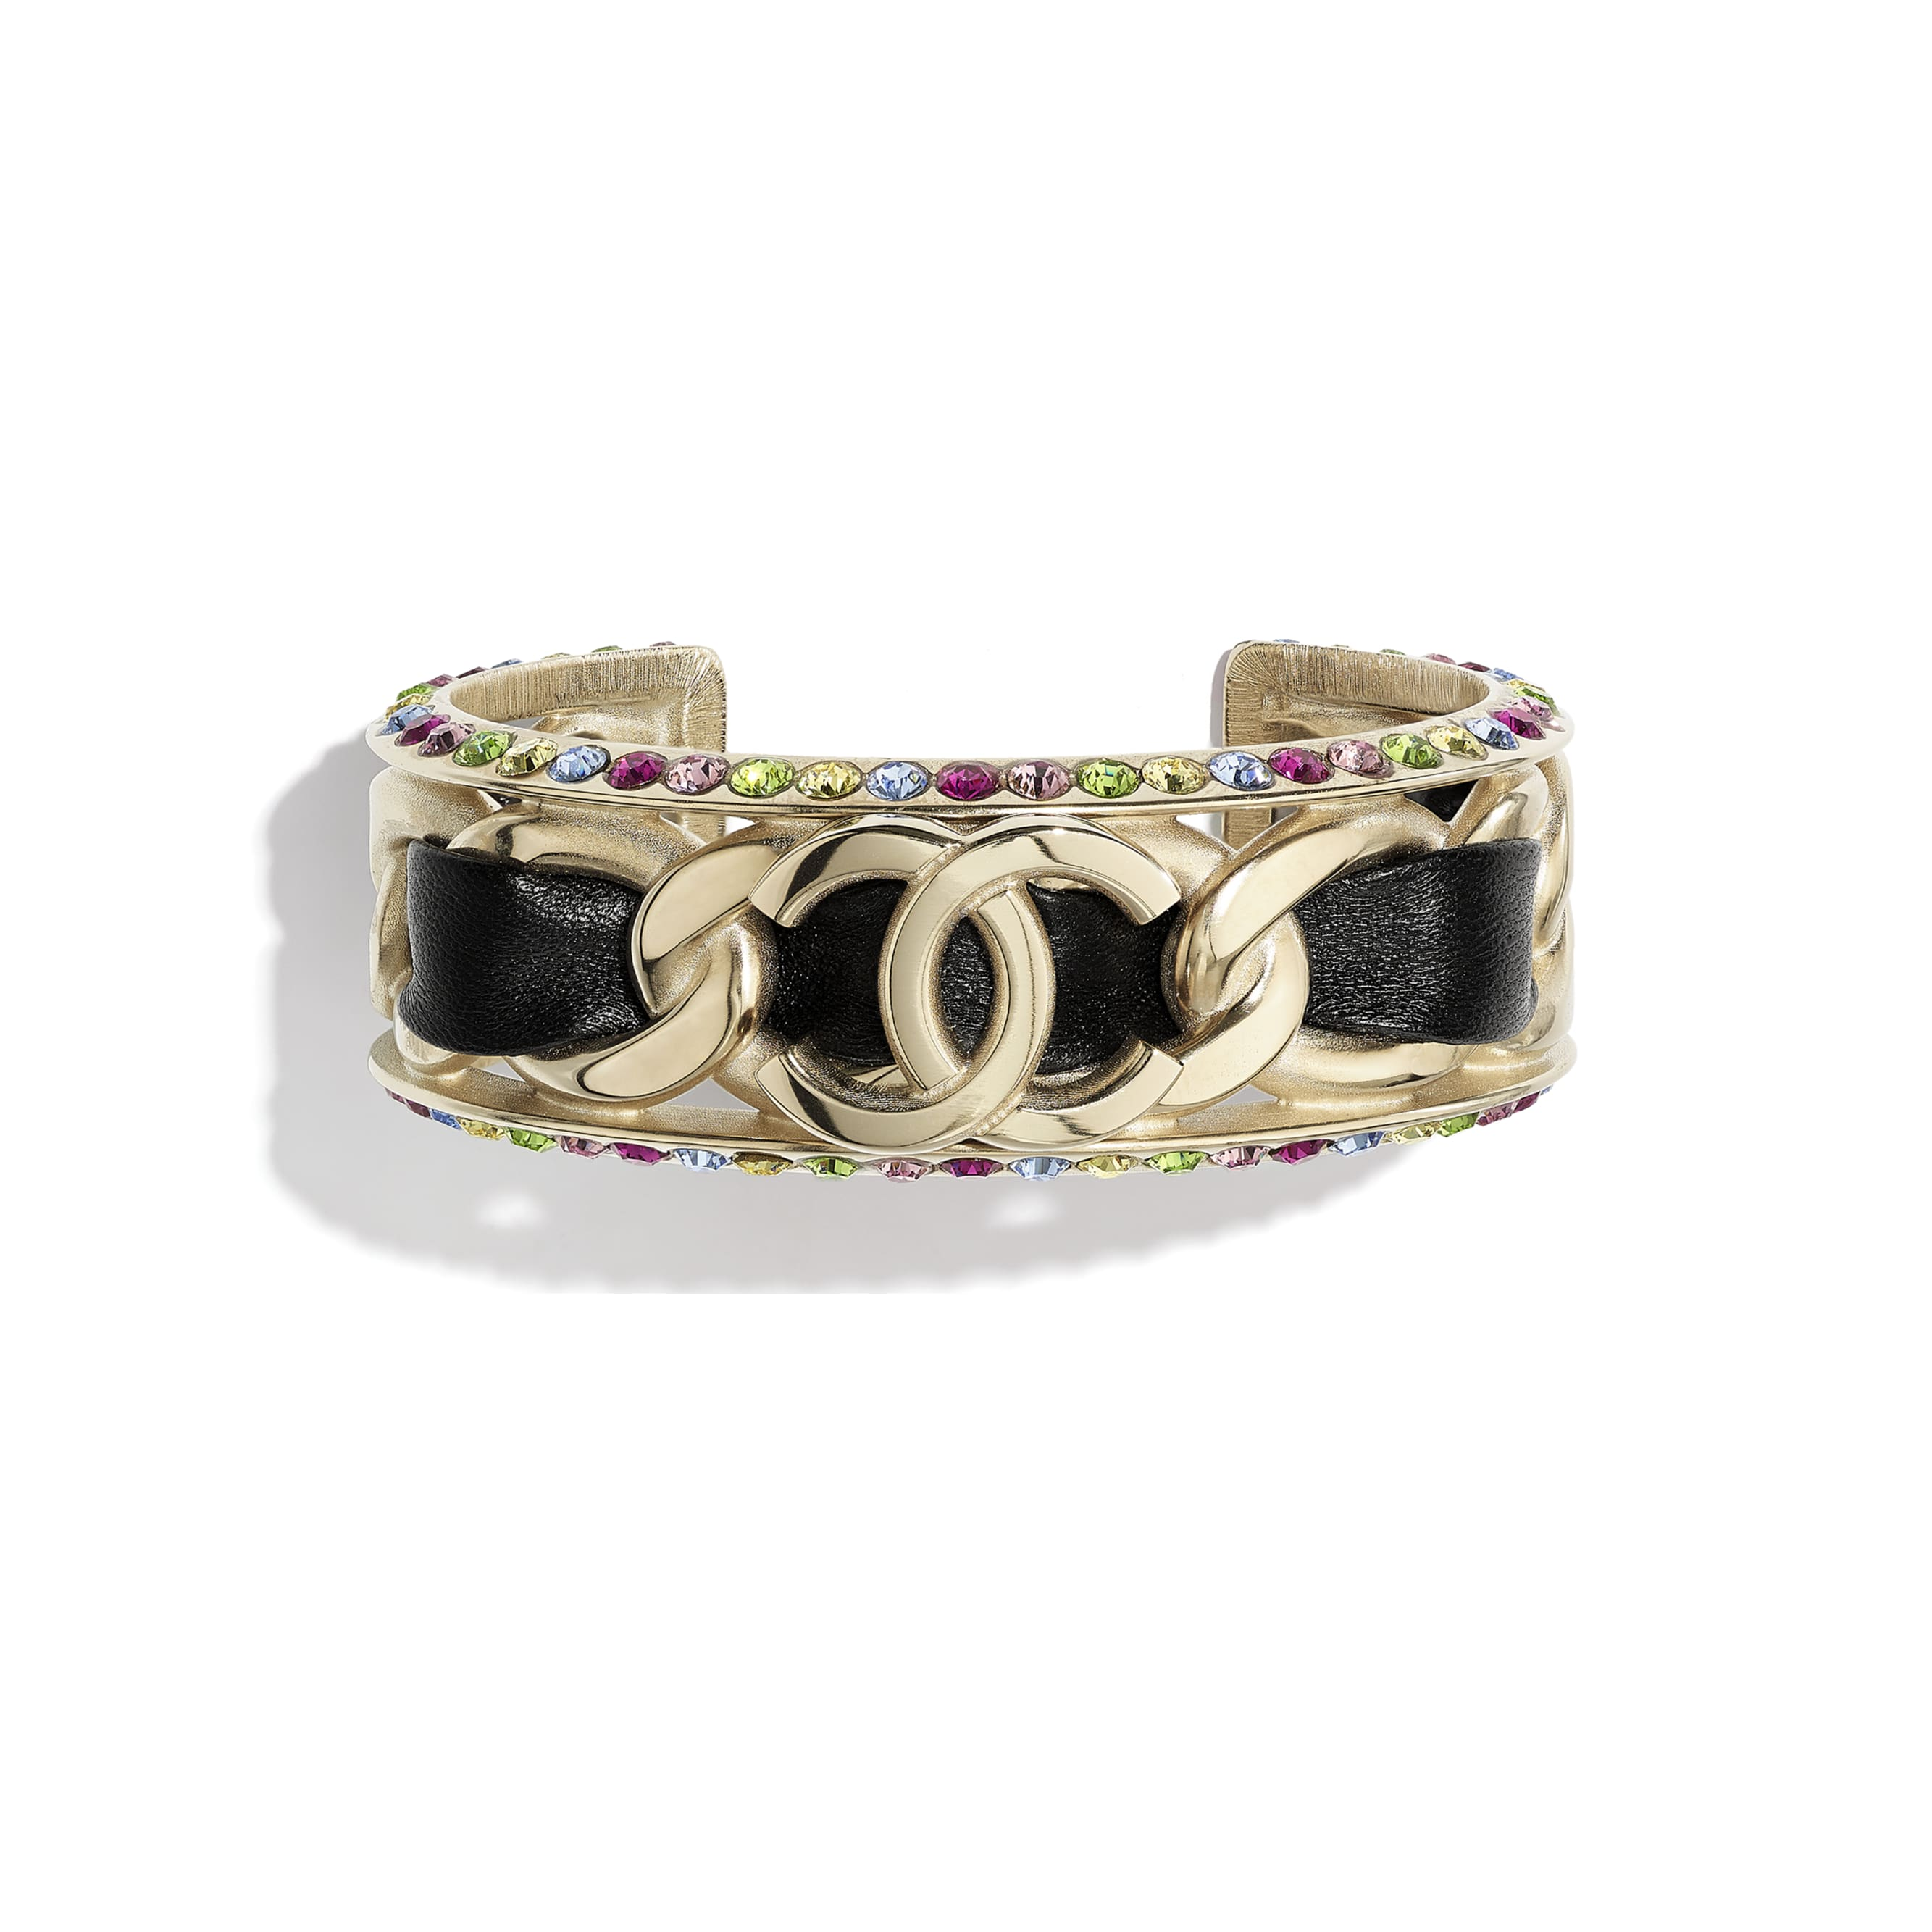 Cuff - Gold, black & multicolor - Metal, Lambskin & Strass - CHANEL - Default view - see standard sized version